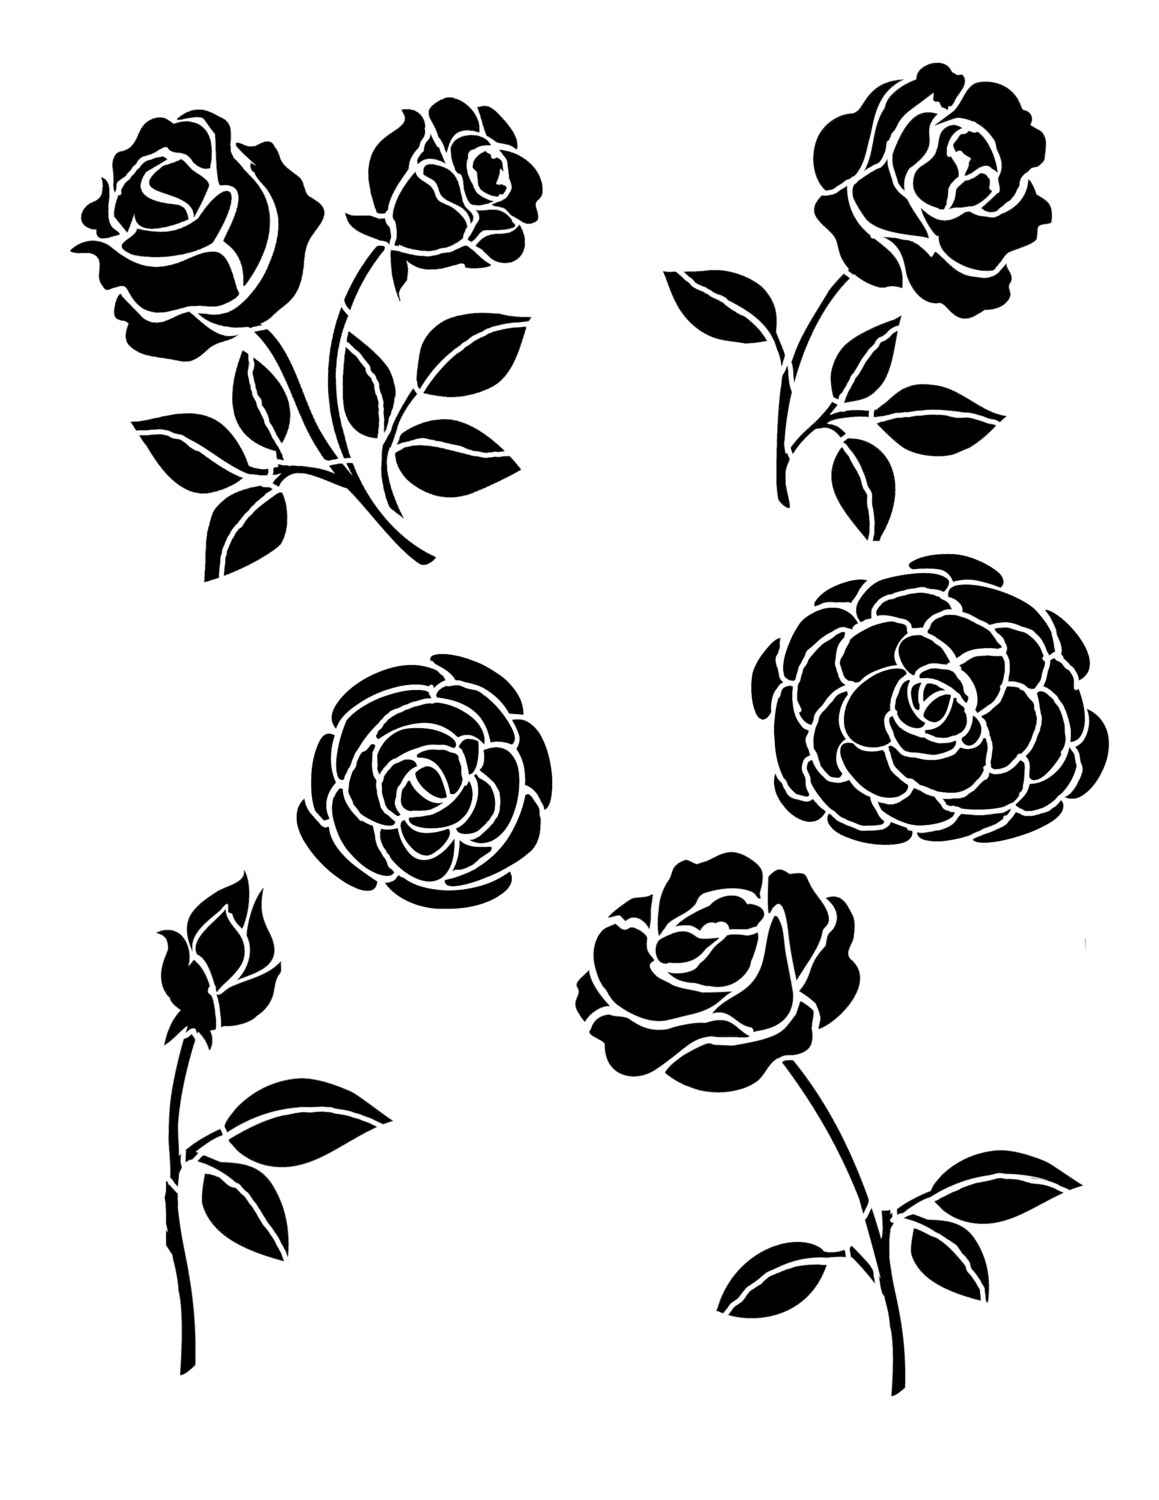 Roses and Peonies Stencil 8x10